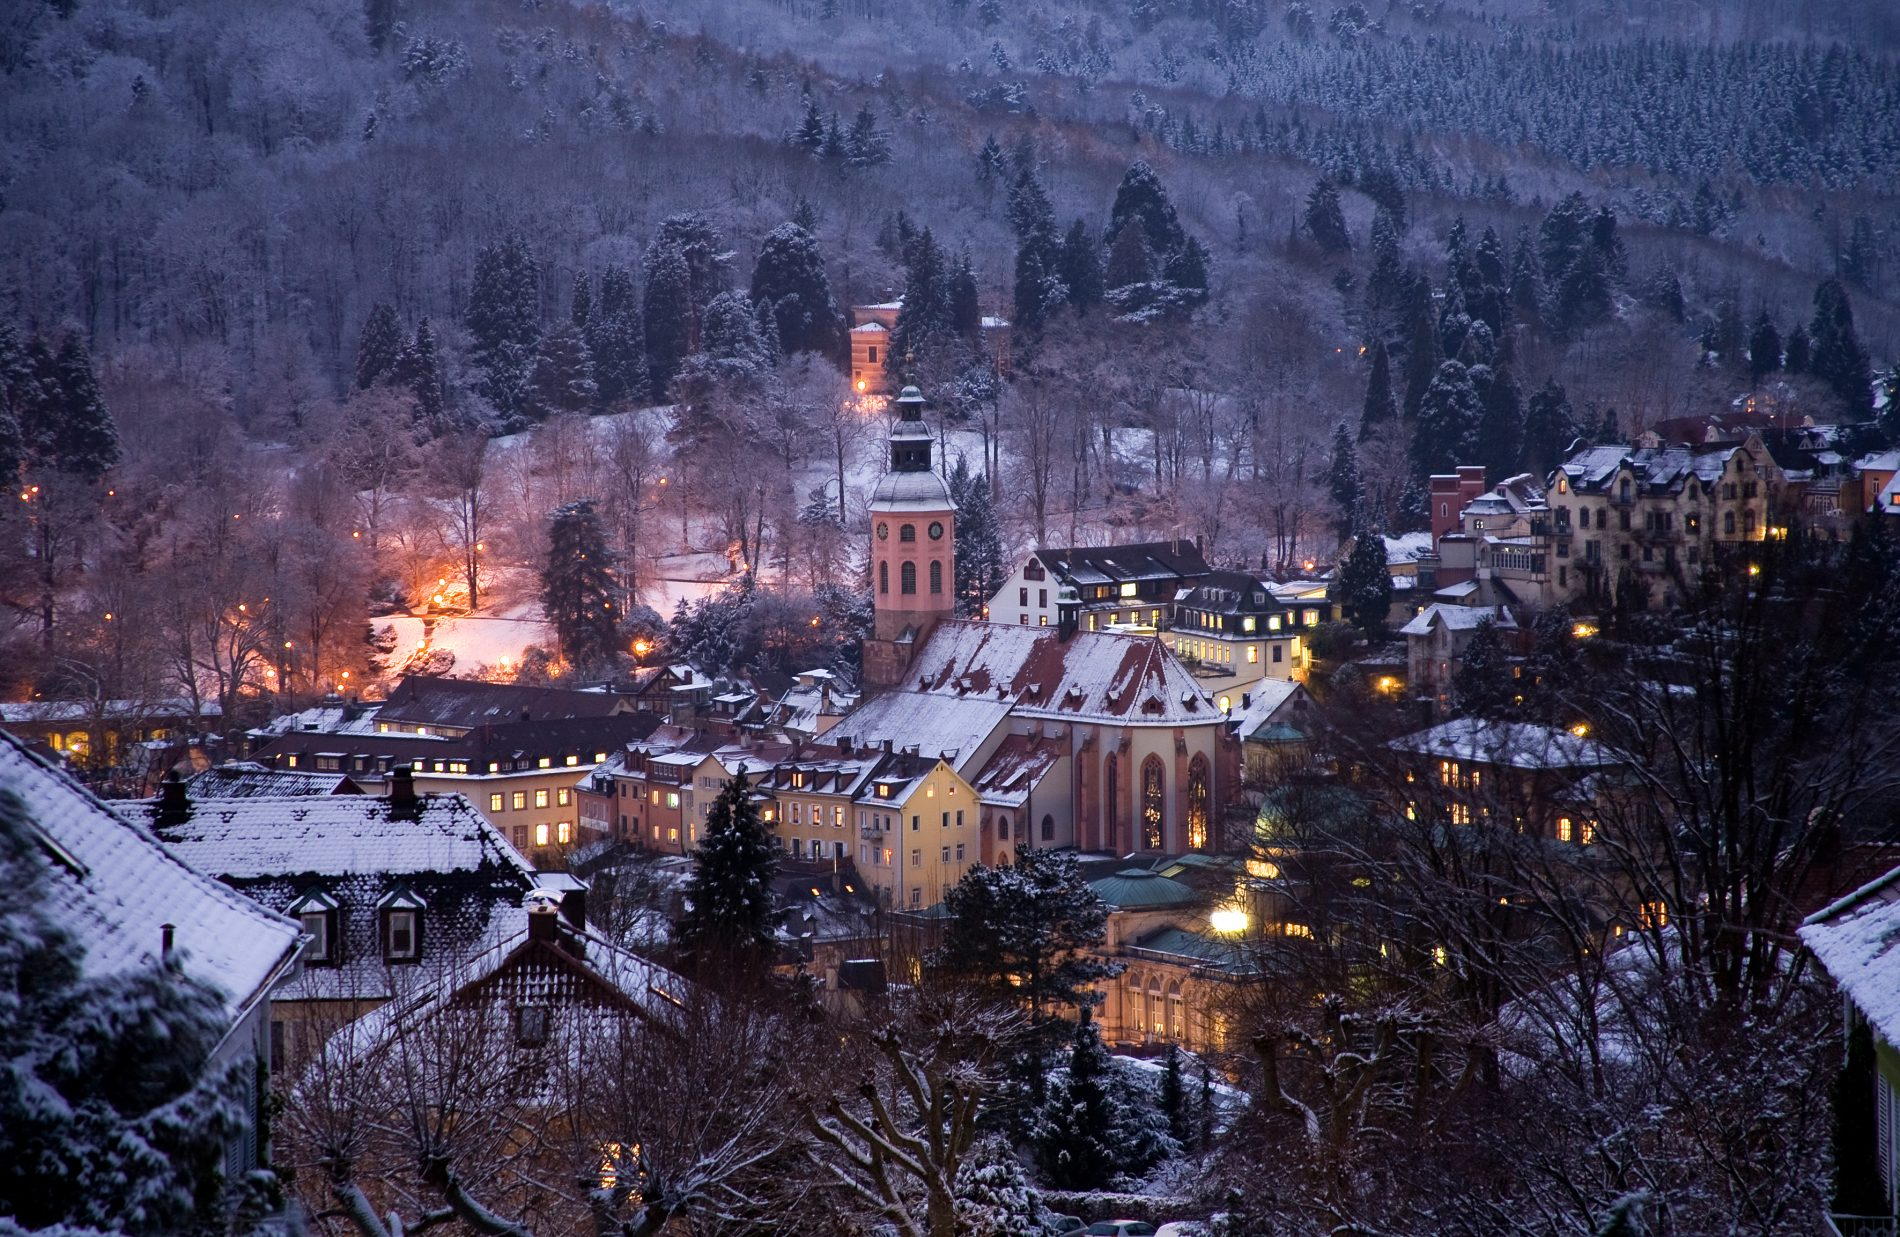 Baden-Baden Germany Winter. The hotel am Sophienpark is centrally located in the beautiful old town of Baden-Baden.